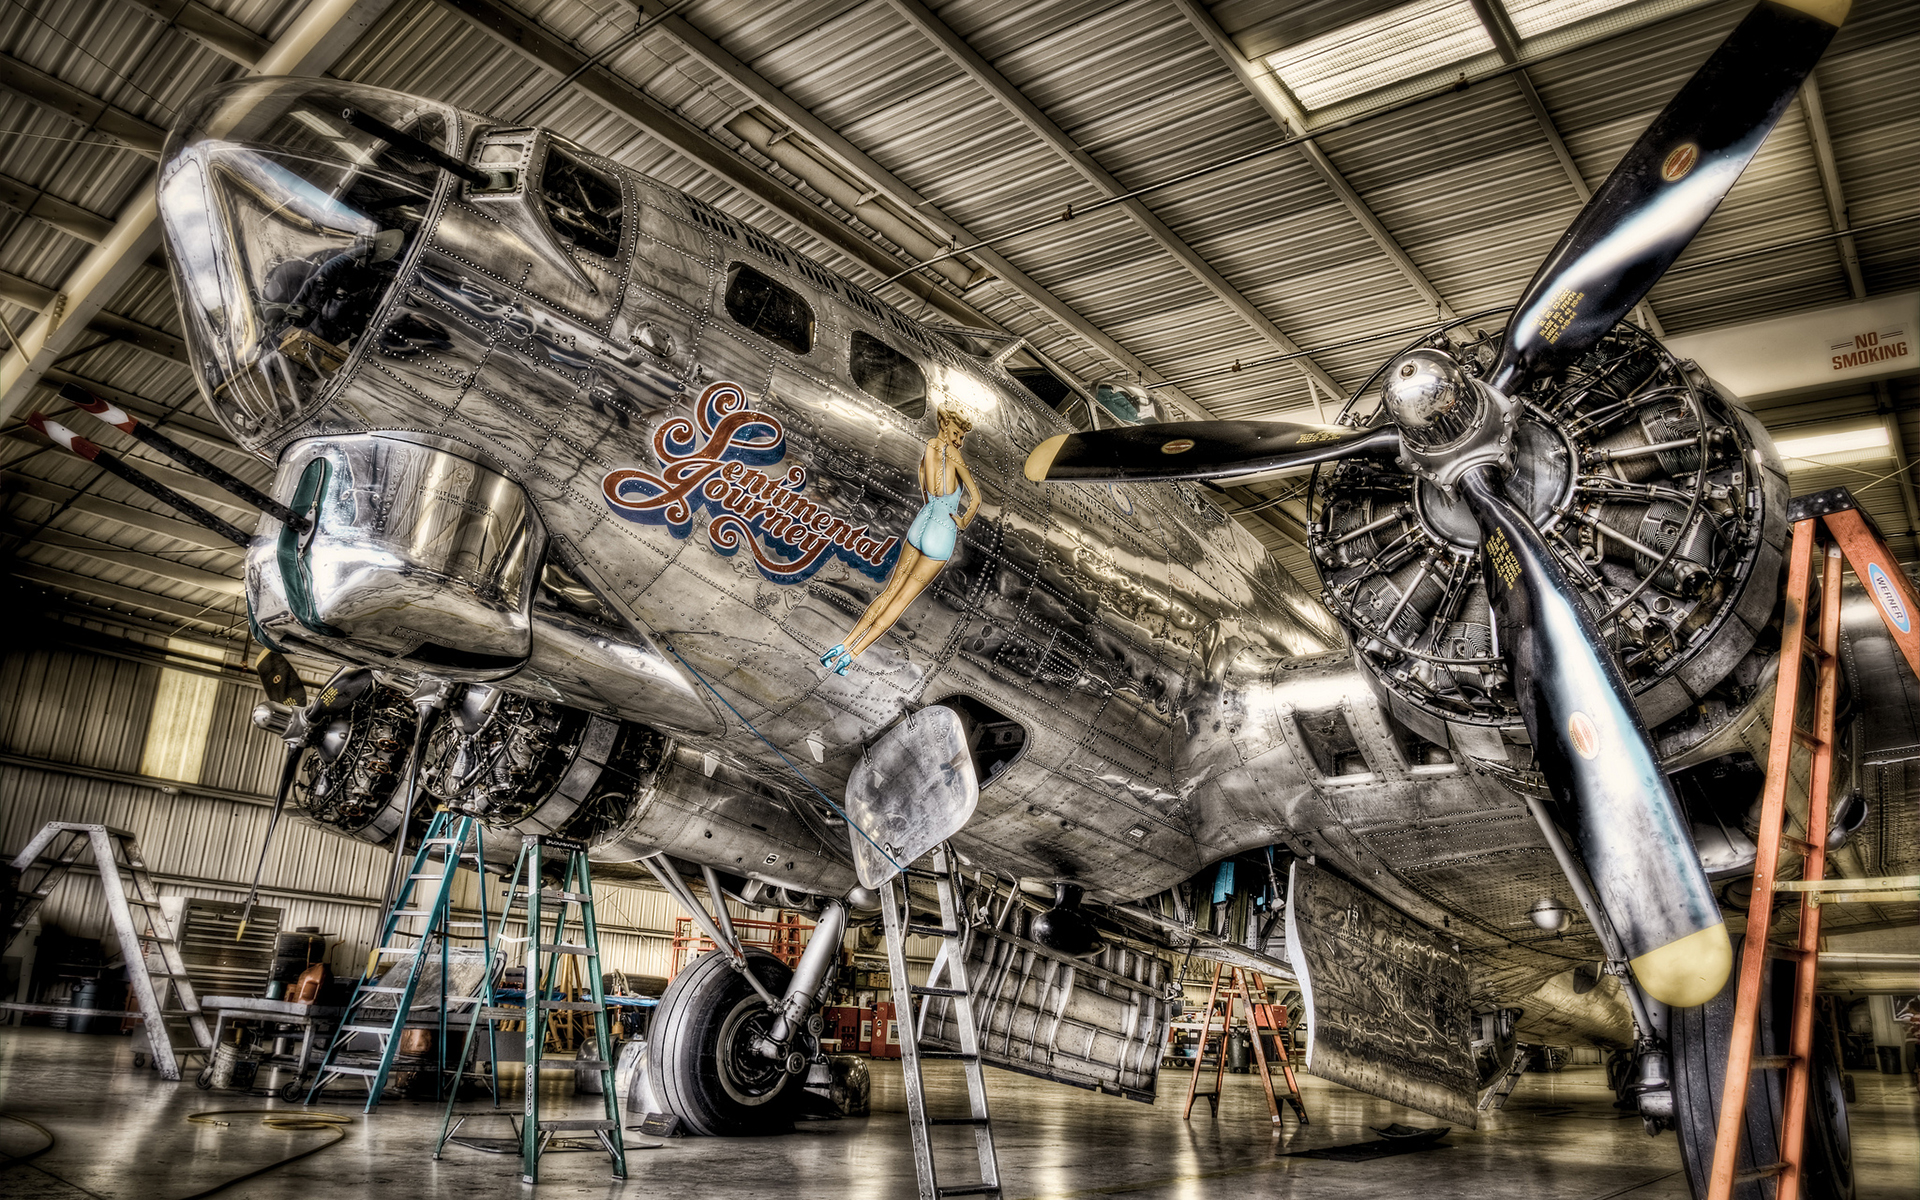 Airplane Plane Nose Art Hdr Propeller Military Engine Wallpaper 1920x1200 125398 Wallpaperup